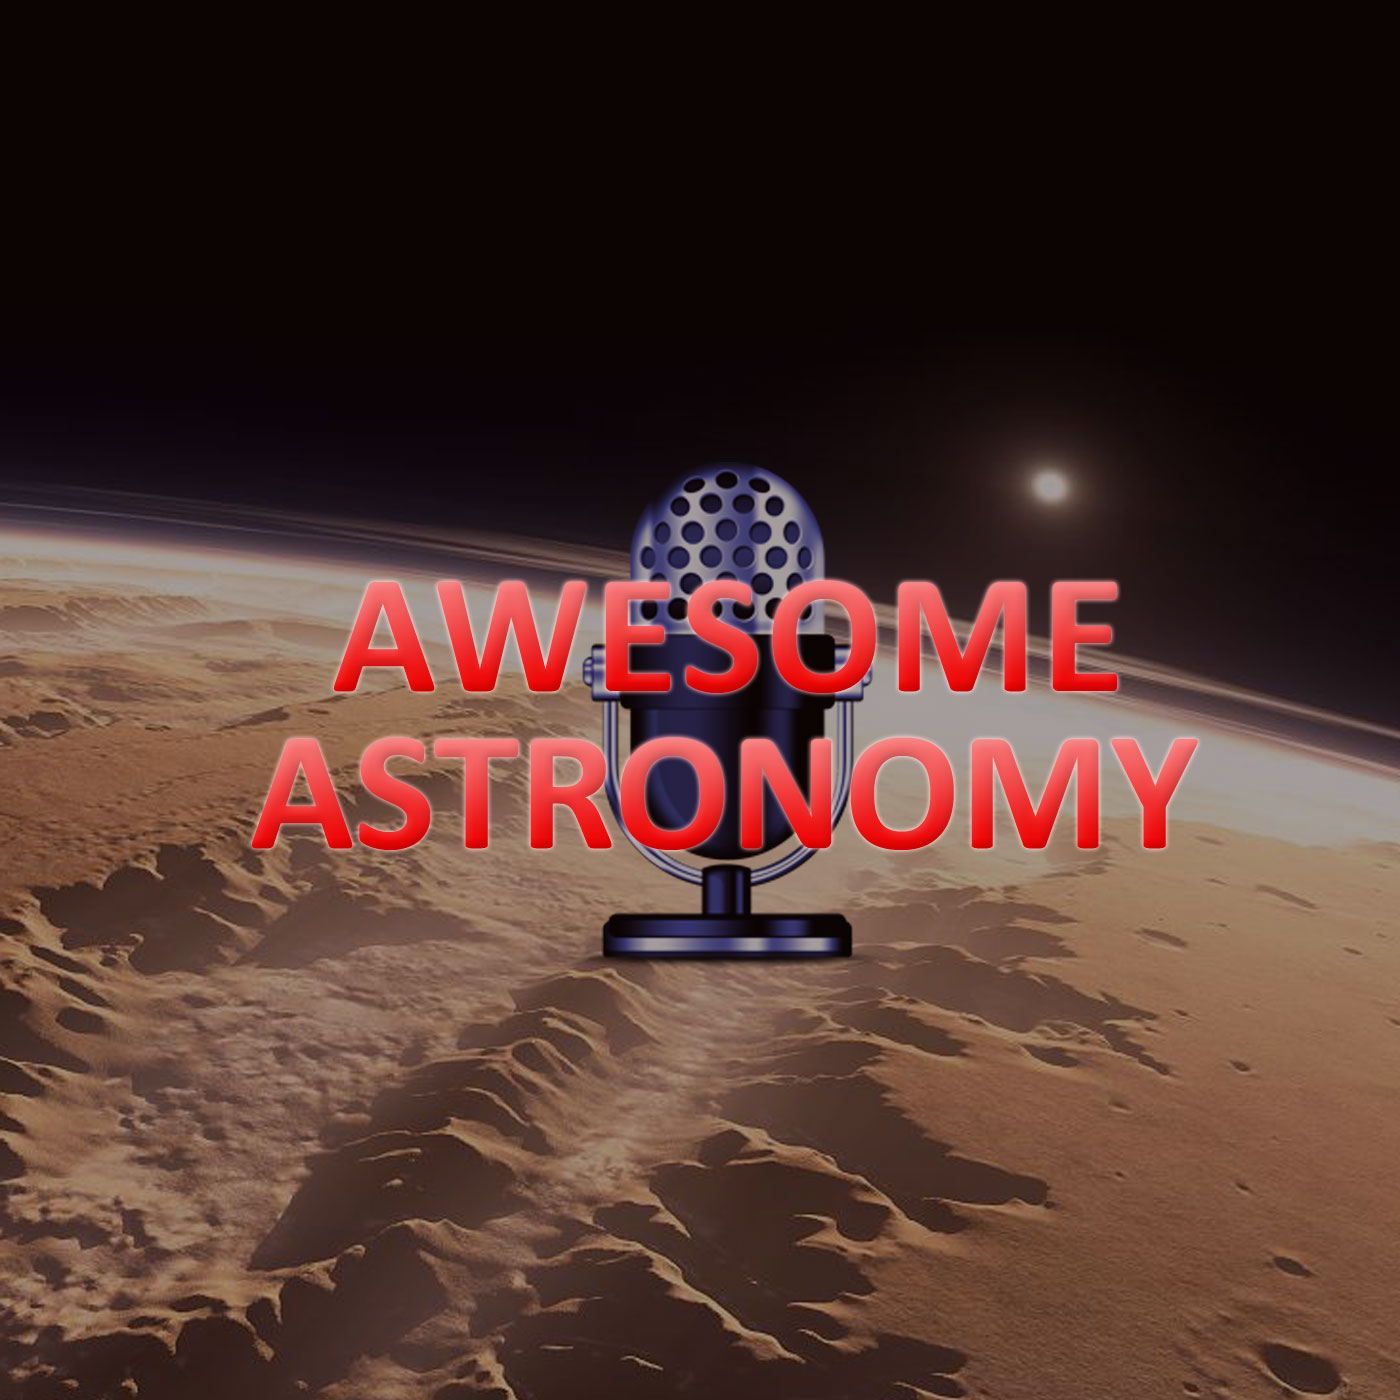 AWESOME ASTRONOMY show art